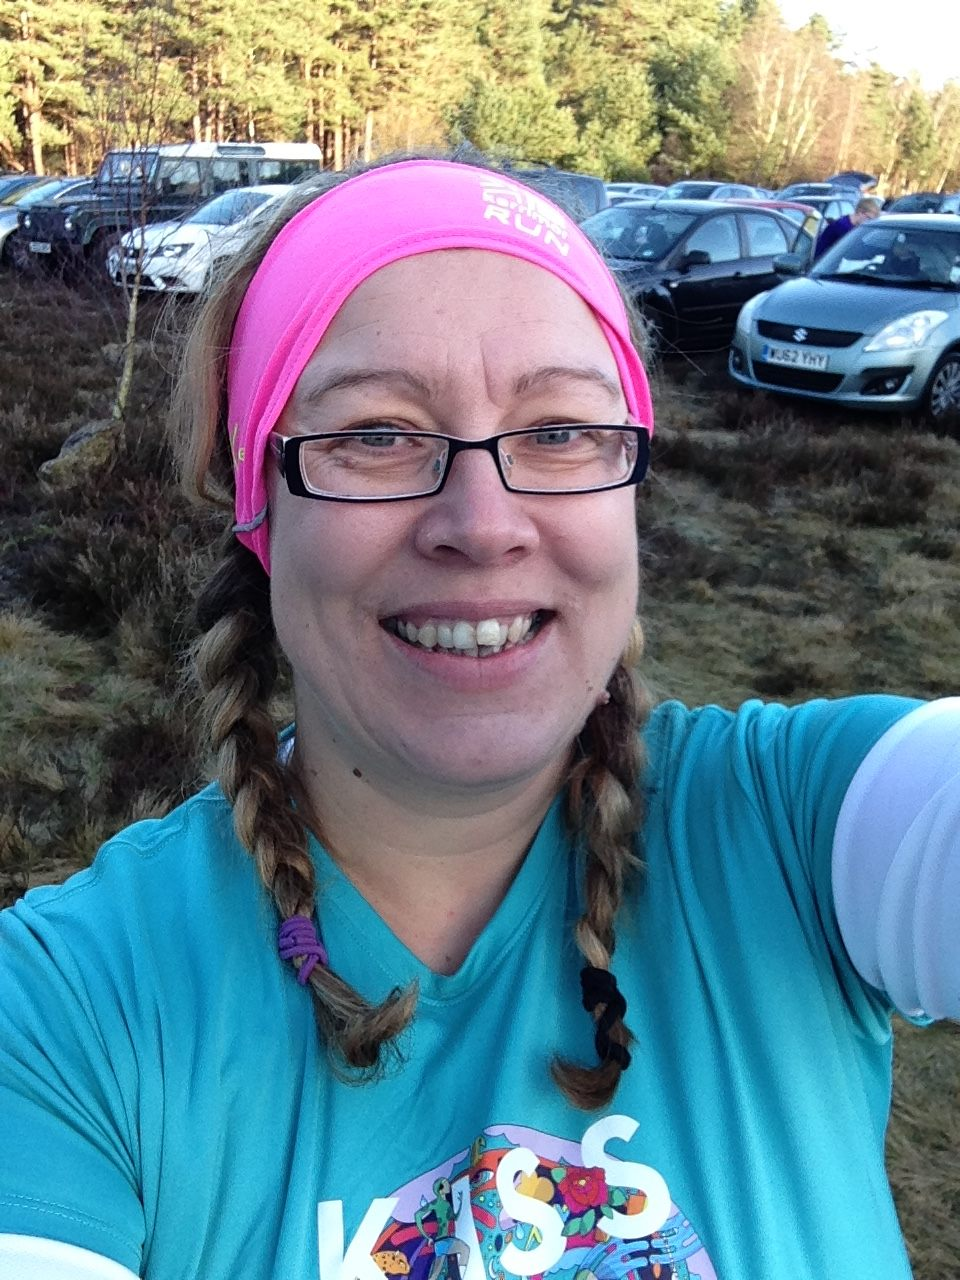 Our RideLondon fundraiser, Kellie Peters, wearing a pink headband and blue t-shirt, with plaits in her hair.